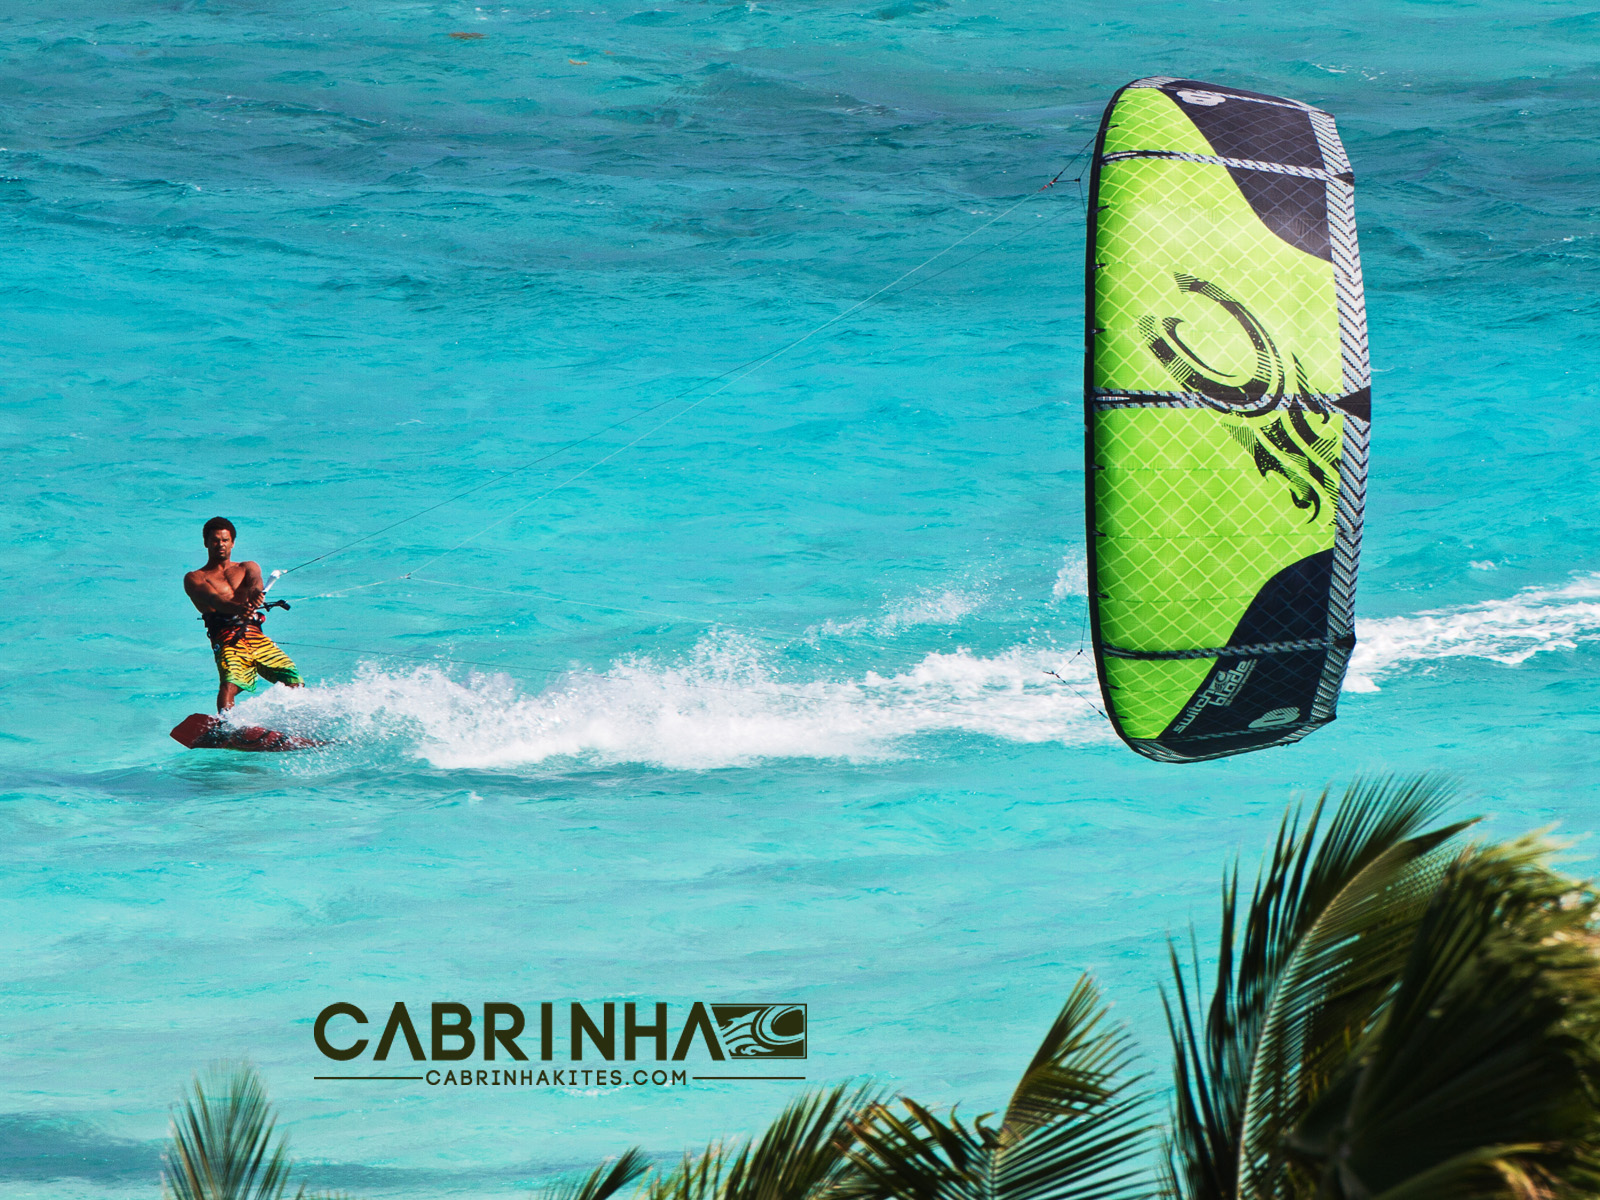 Cabrinha Kite wallpapers and images - wallpapers, pictures, photos